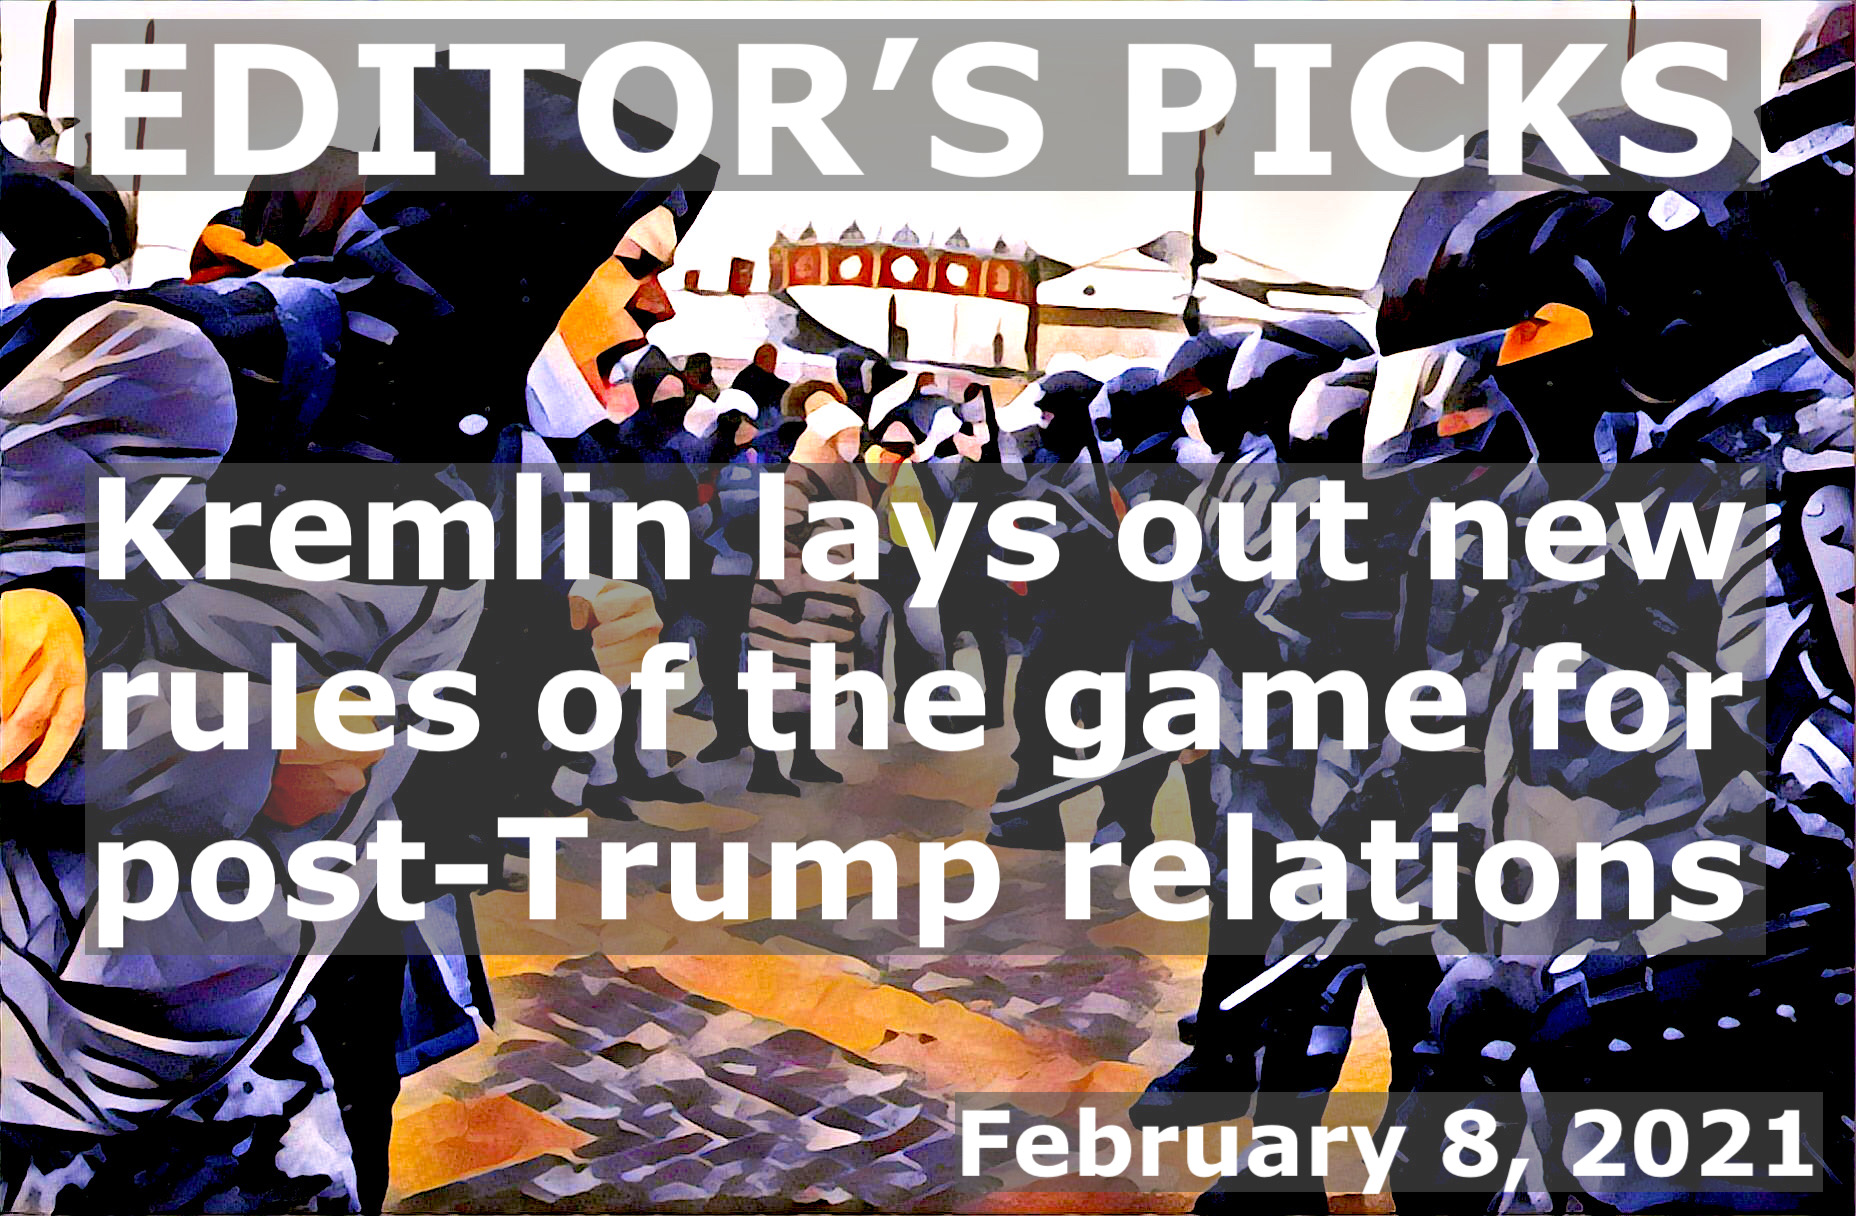 bne IntelliNews Editor's Picks --  Kremlin lays out new rules of the game for post-Trump relations